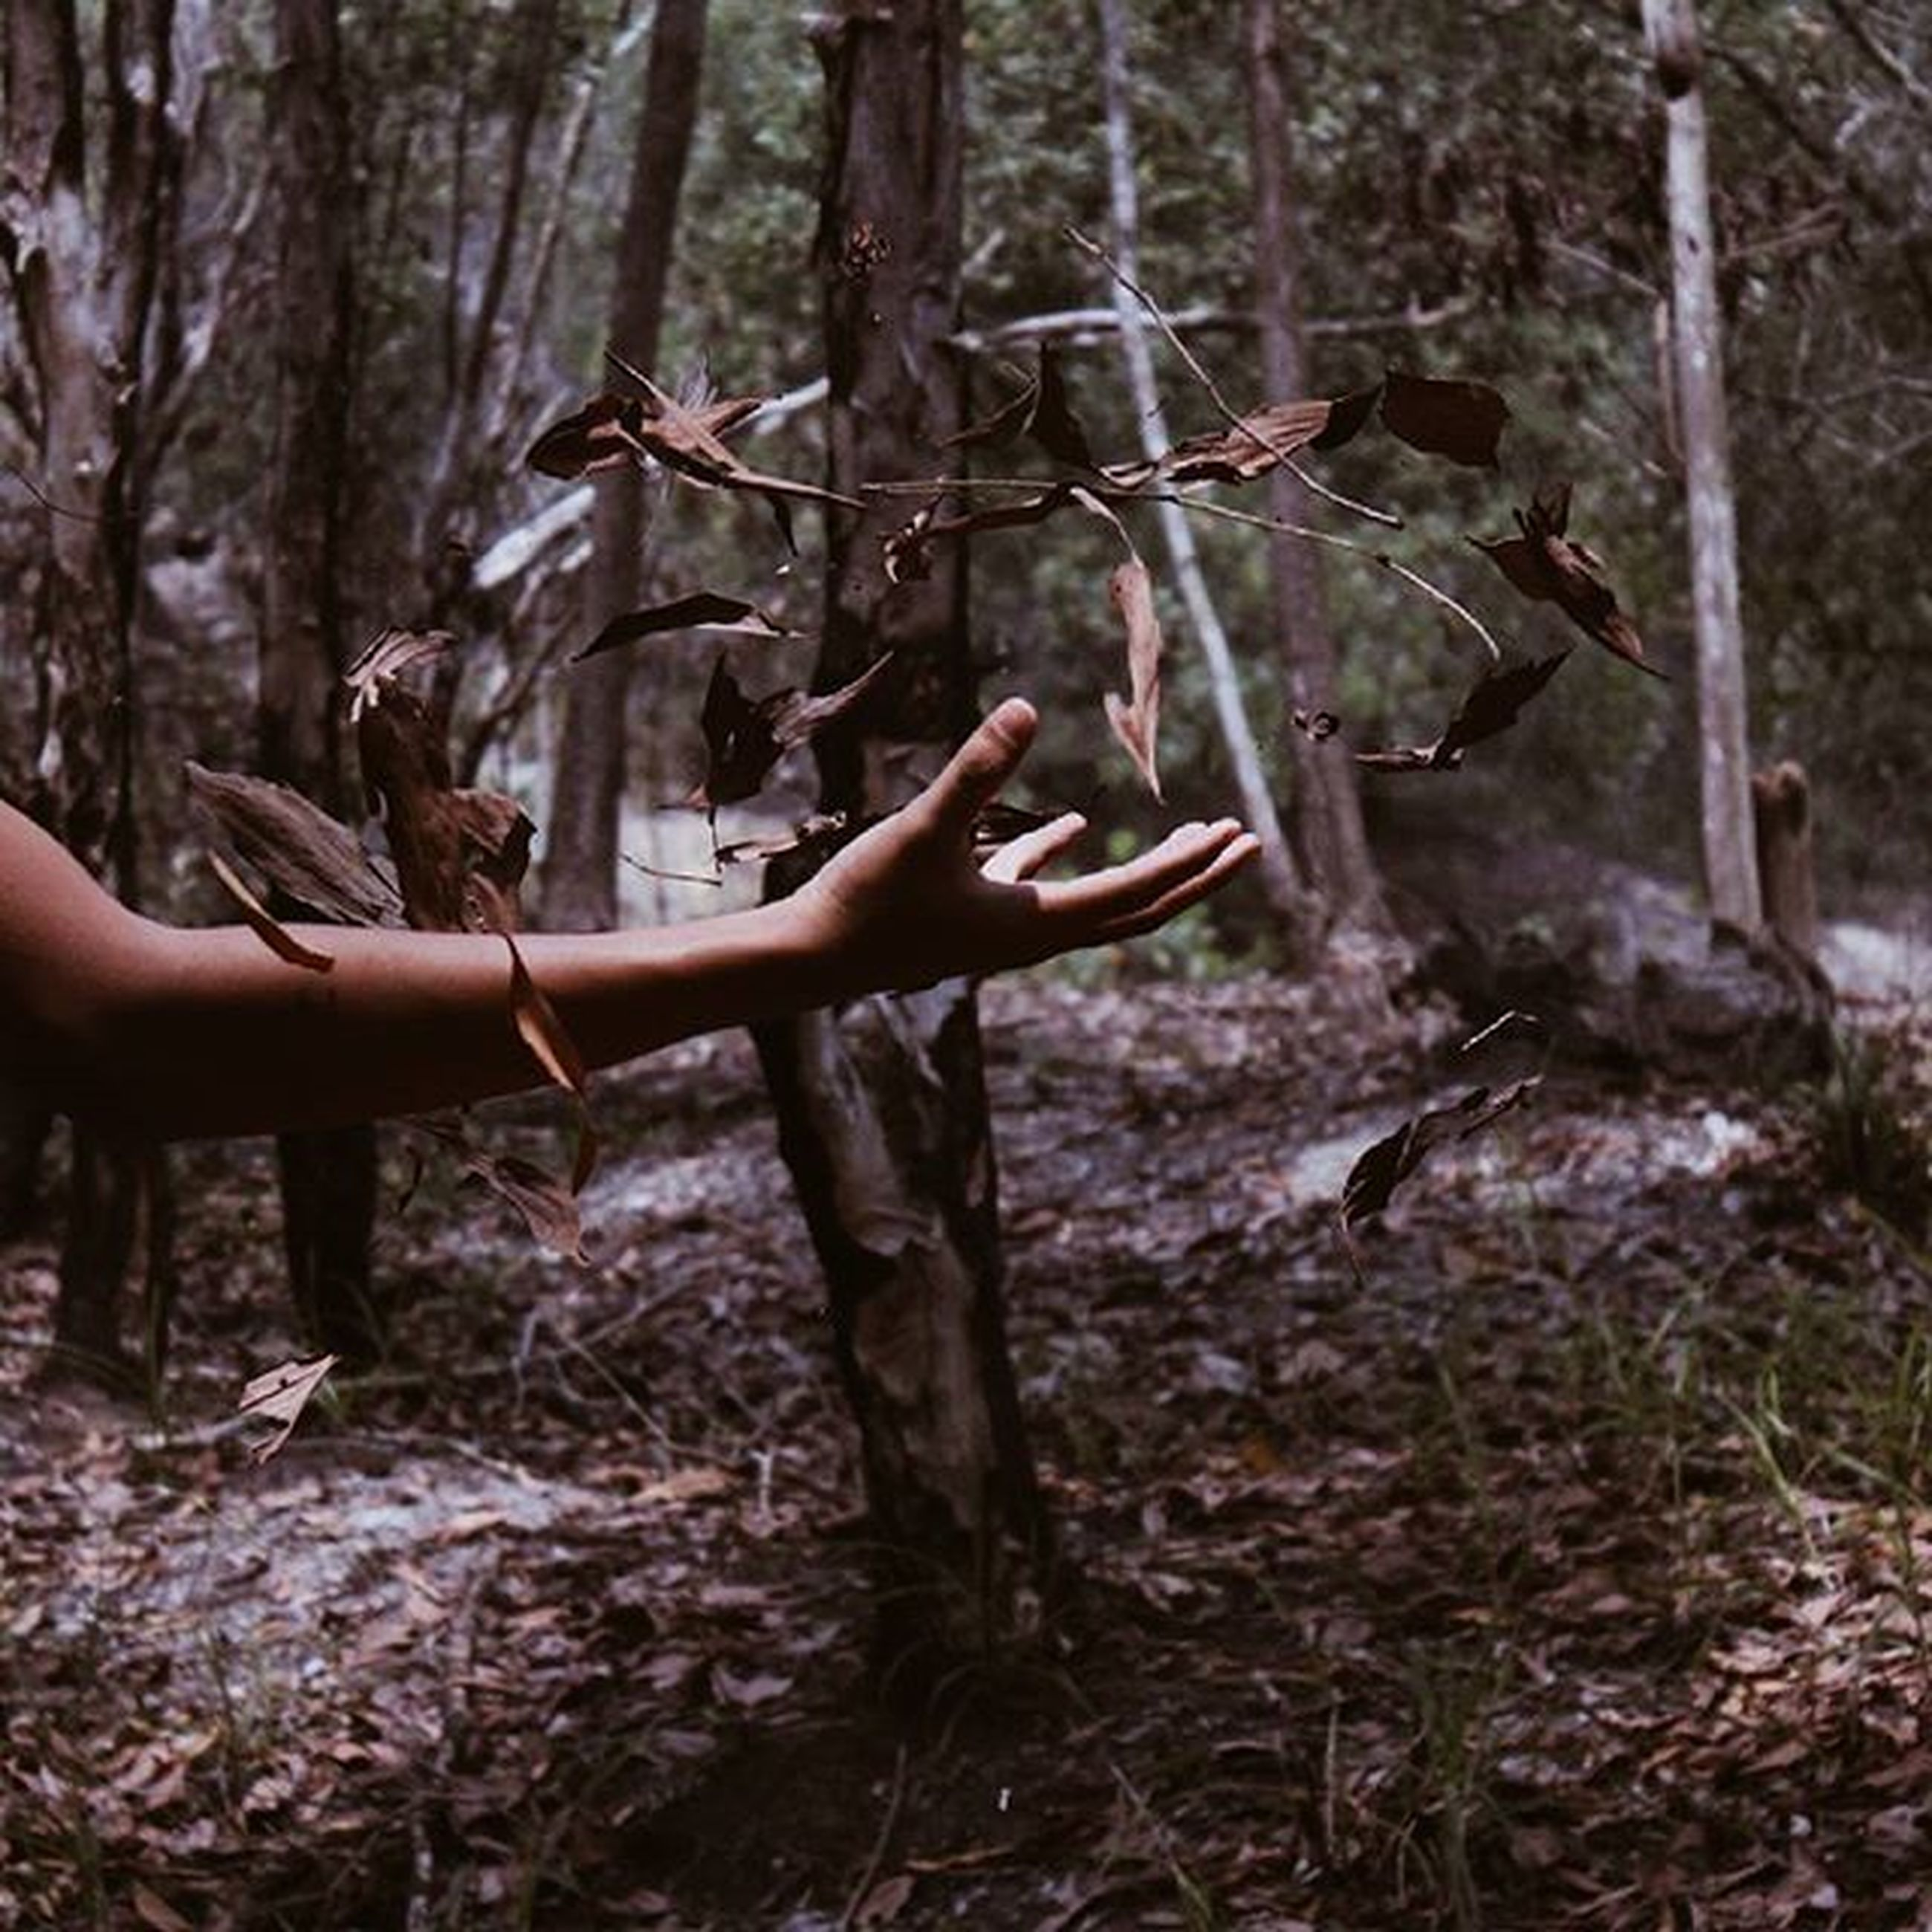 tree, tree trunk, forest, nature, tranquility, woodland, growth, branch, leisure activity, lifestyles, person, holding, day, outdoors, beauty in nature, part of, wood - material, root